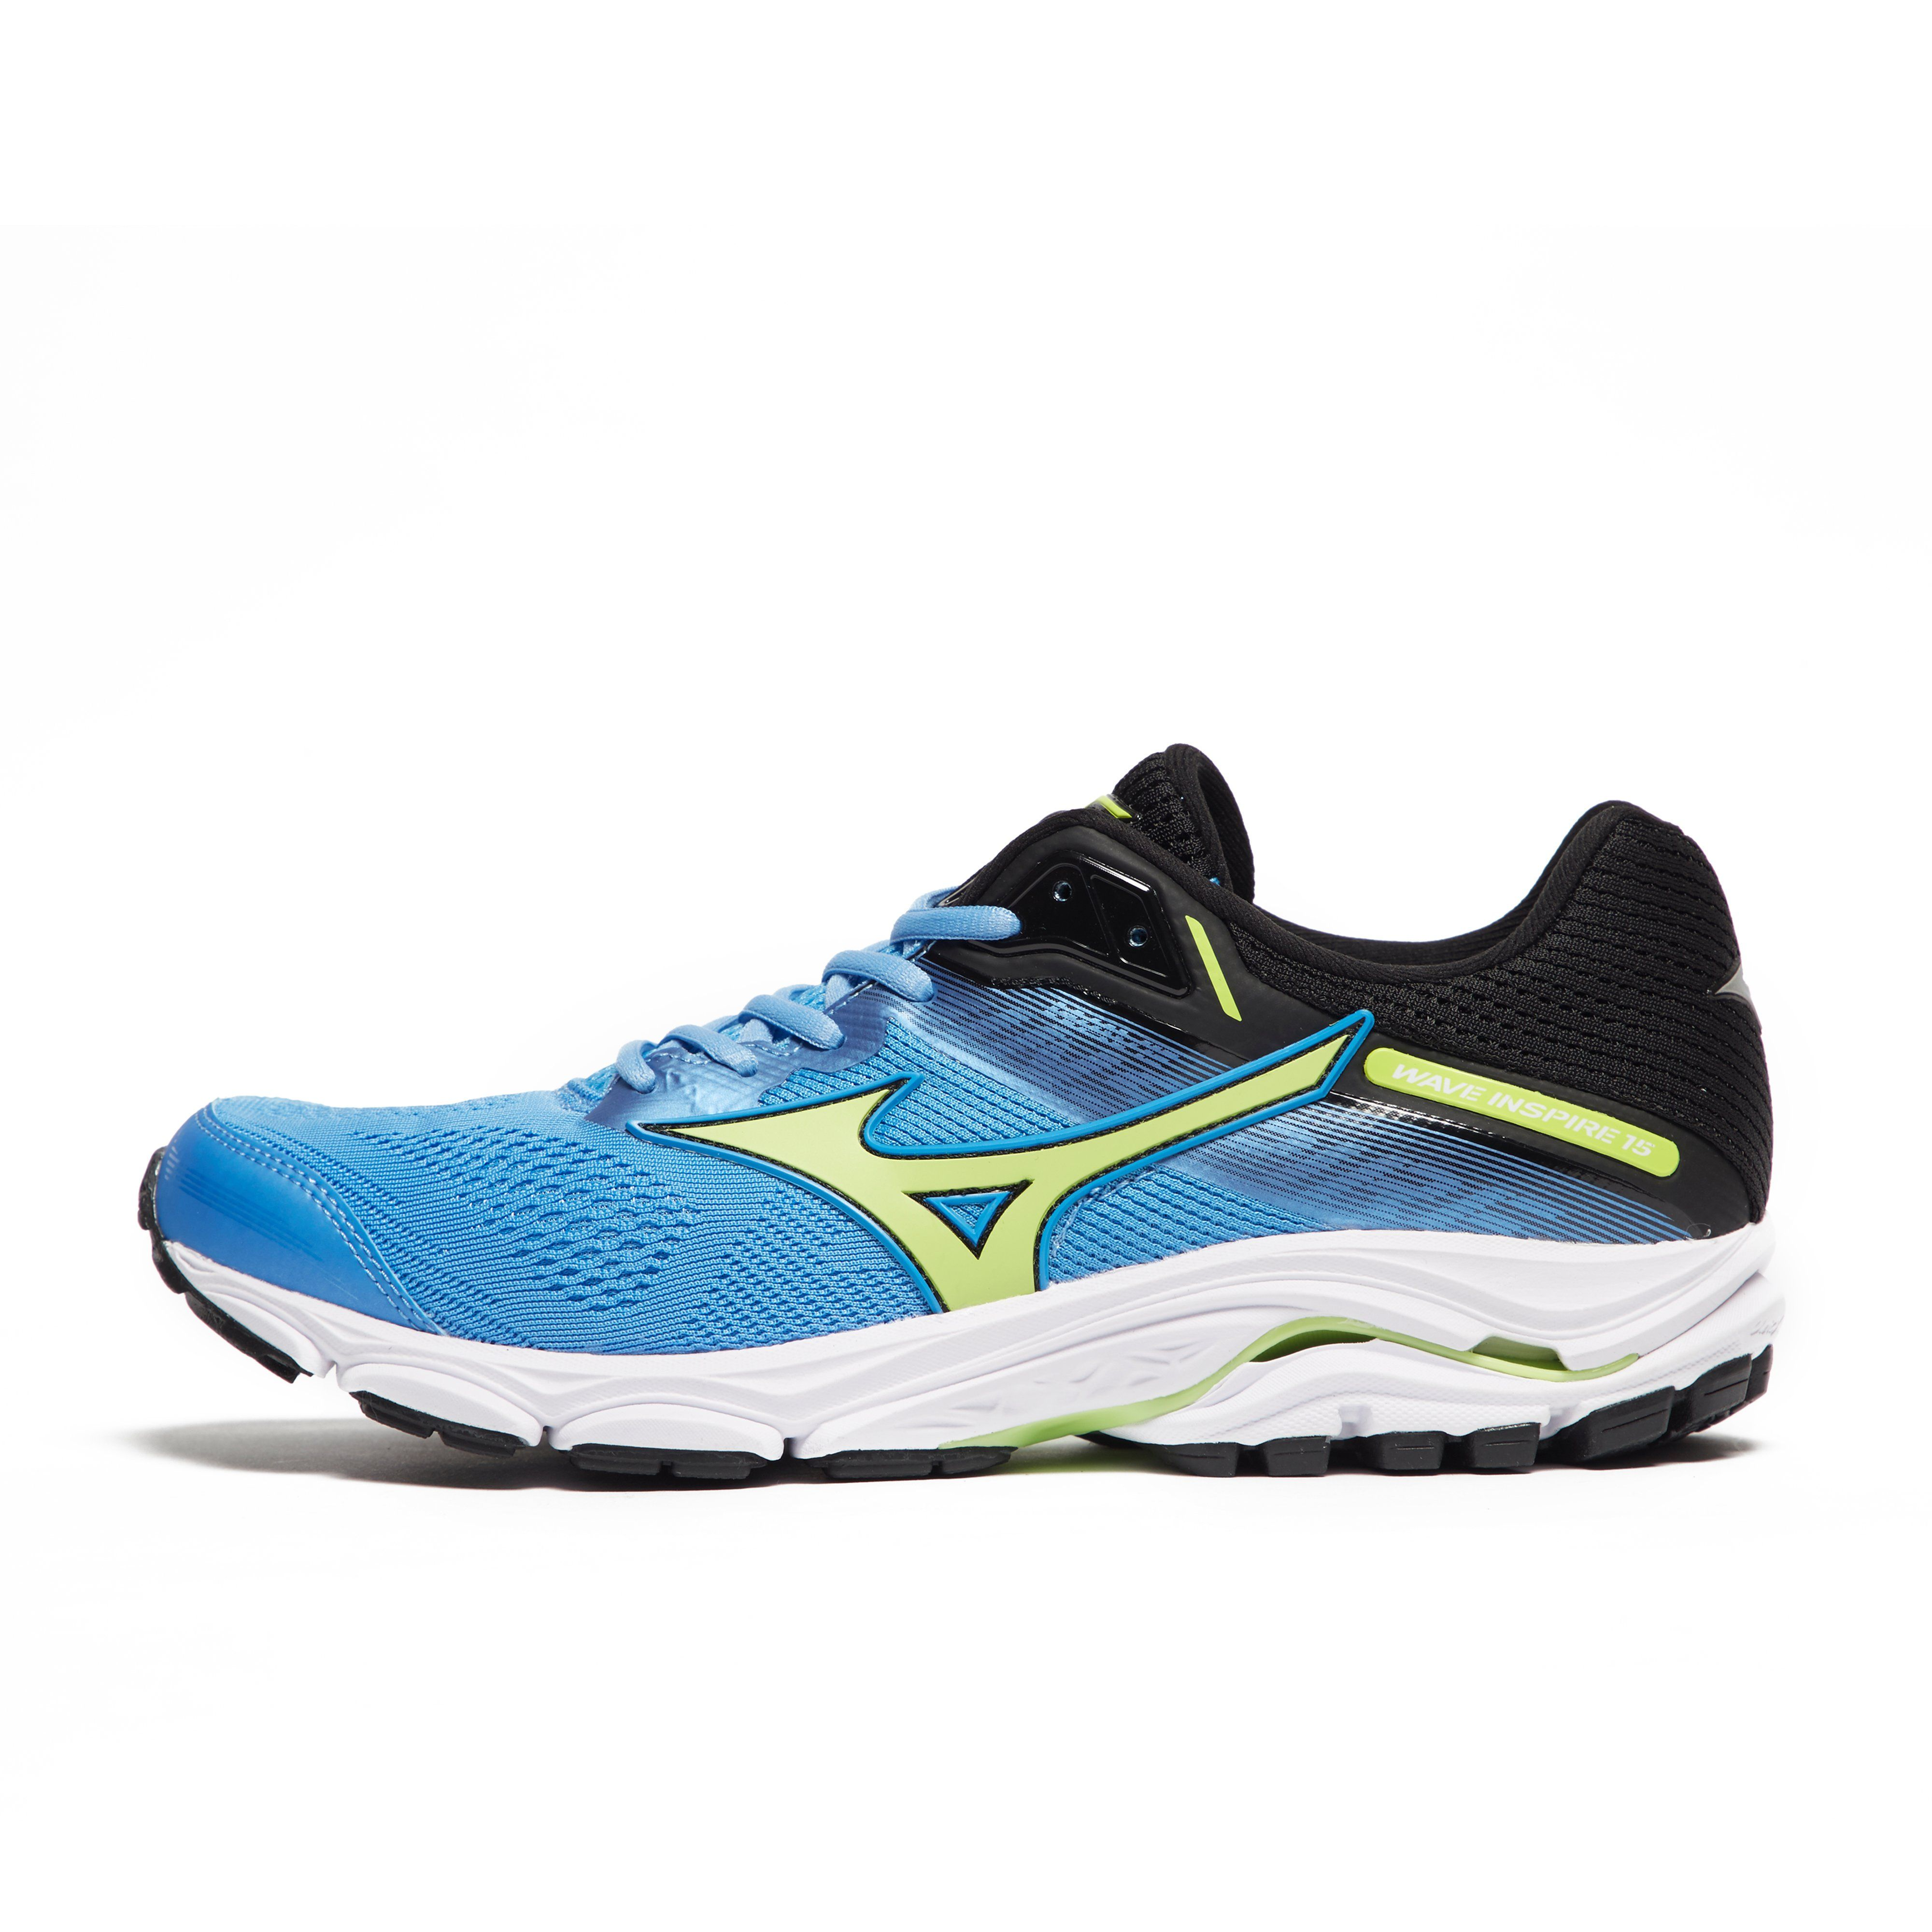 Mizuno Wave Inspire 15 Men's Running Shoes